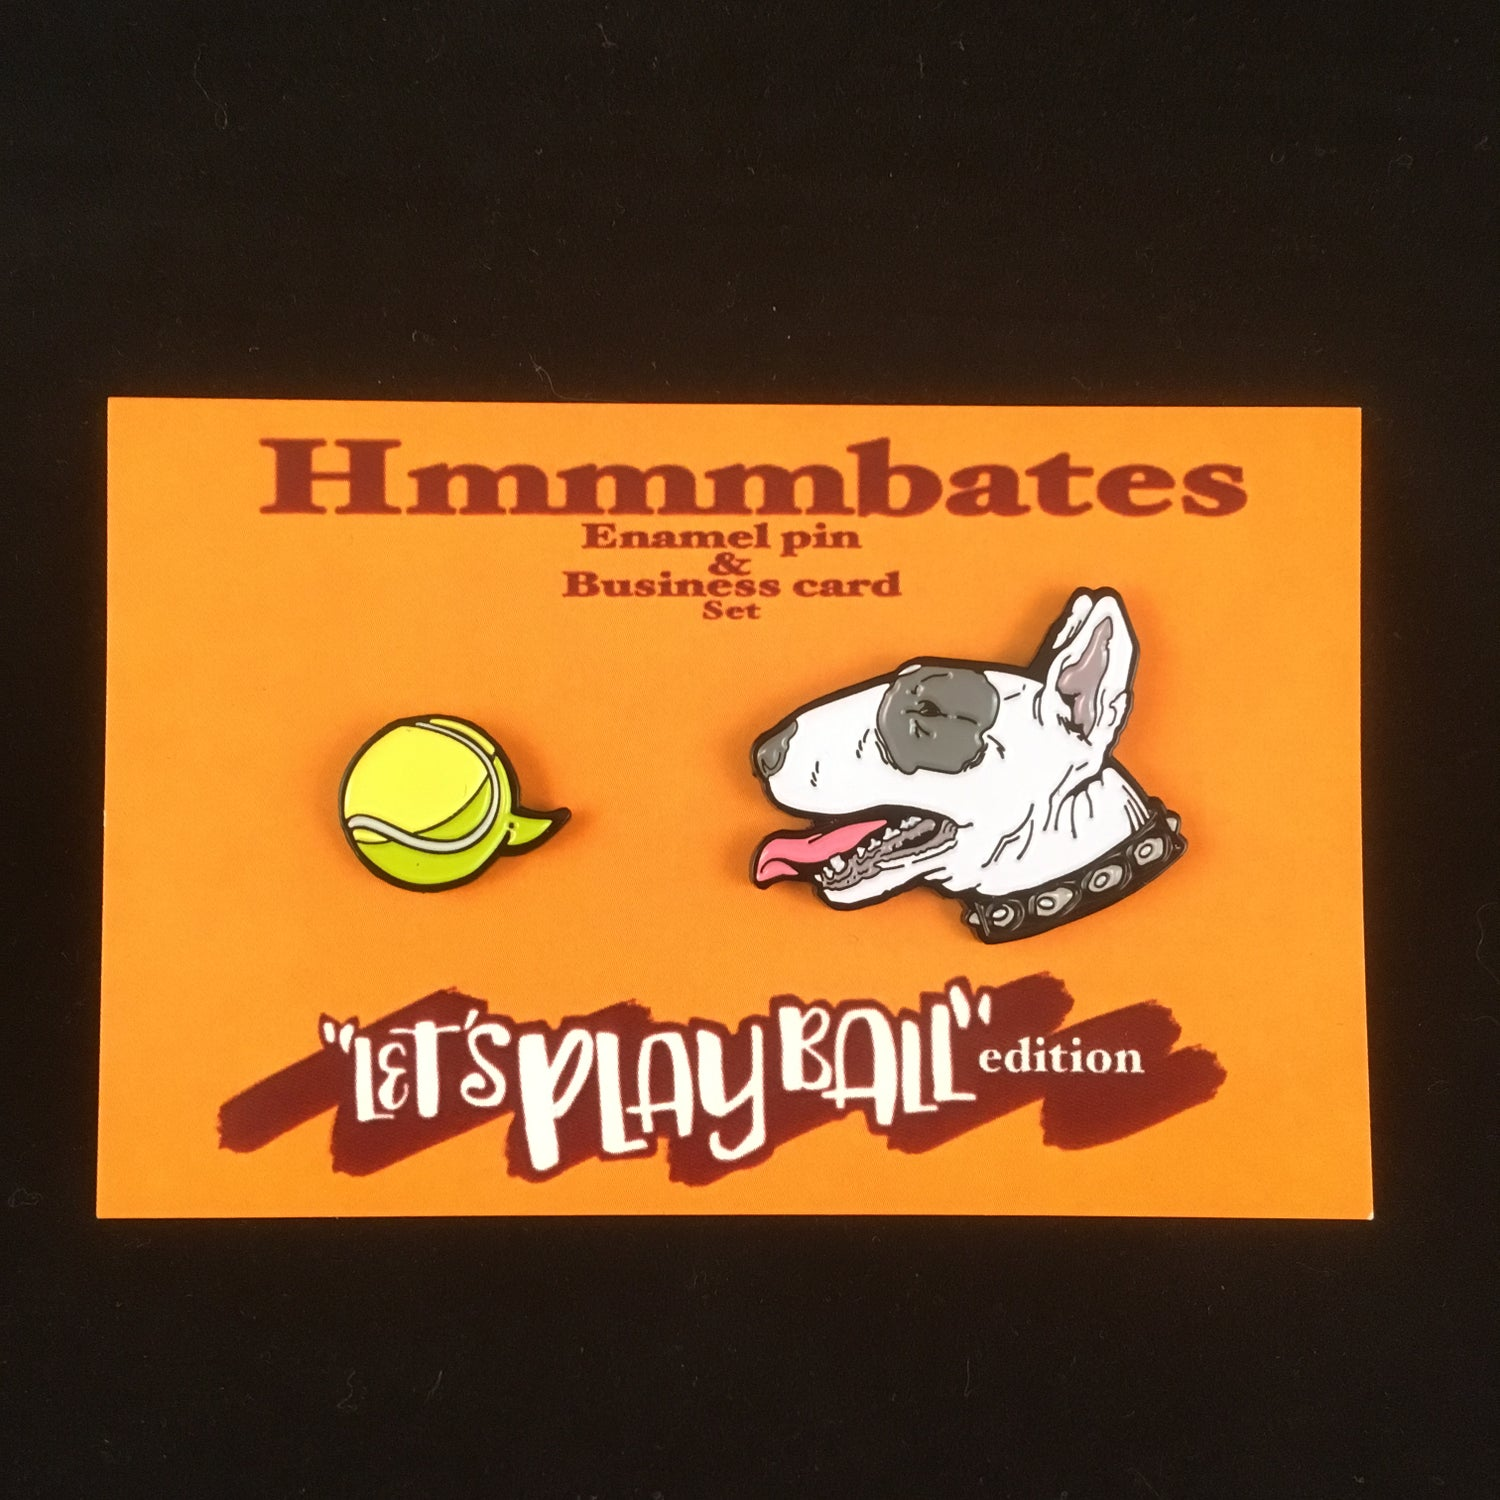 Image of Hmmmbates 'let's play ball' edition enamel pin set